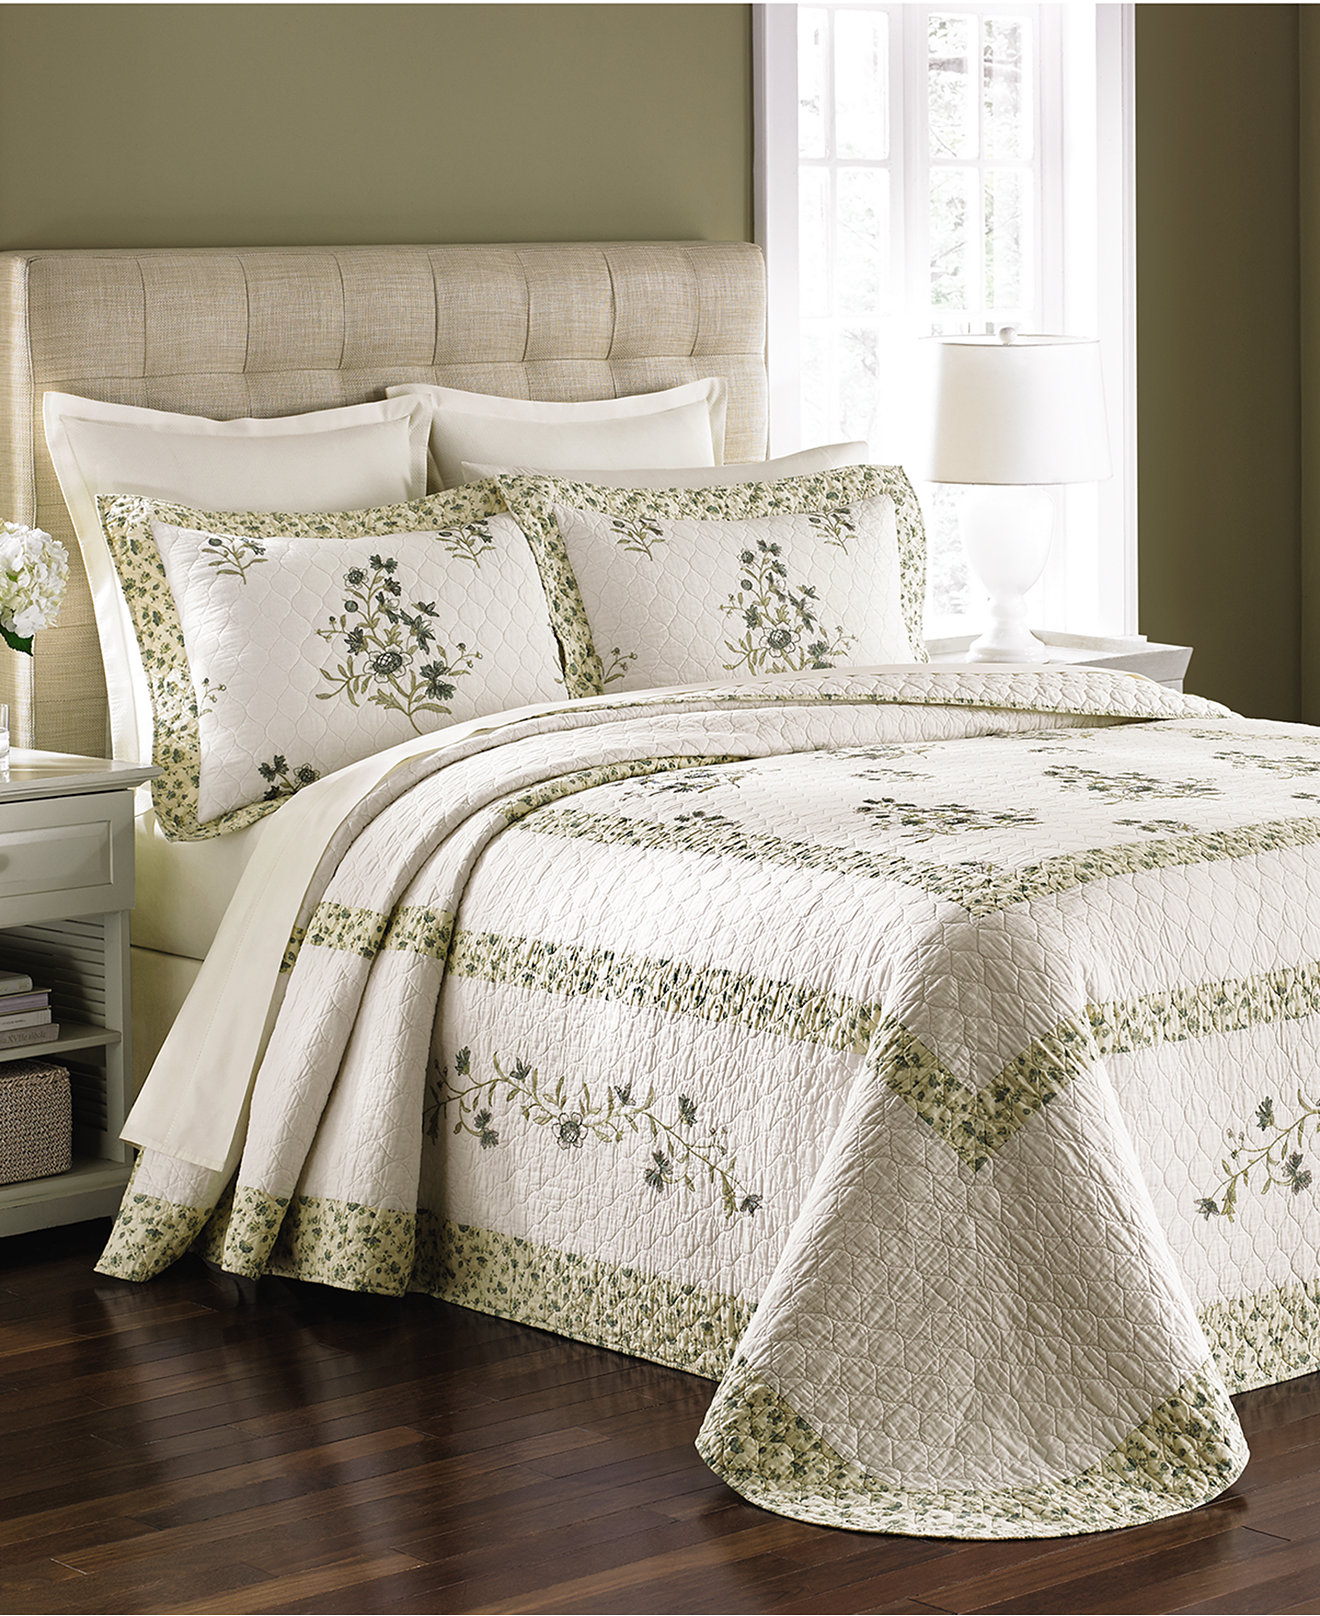 Wayfair Comforter Sets | Queen Bedspreads | Fitted Queen Bedspread